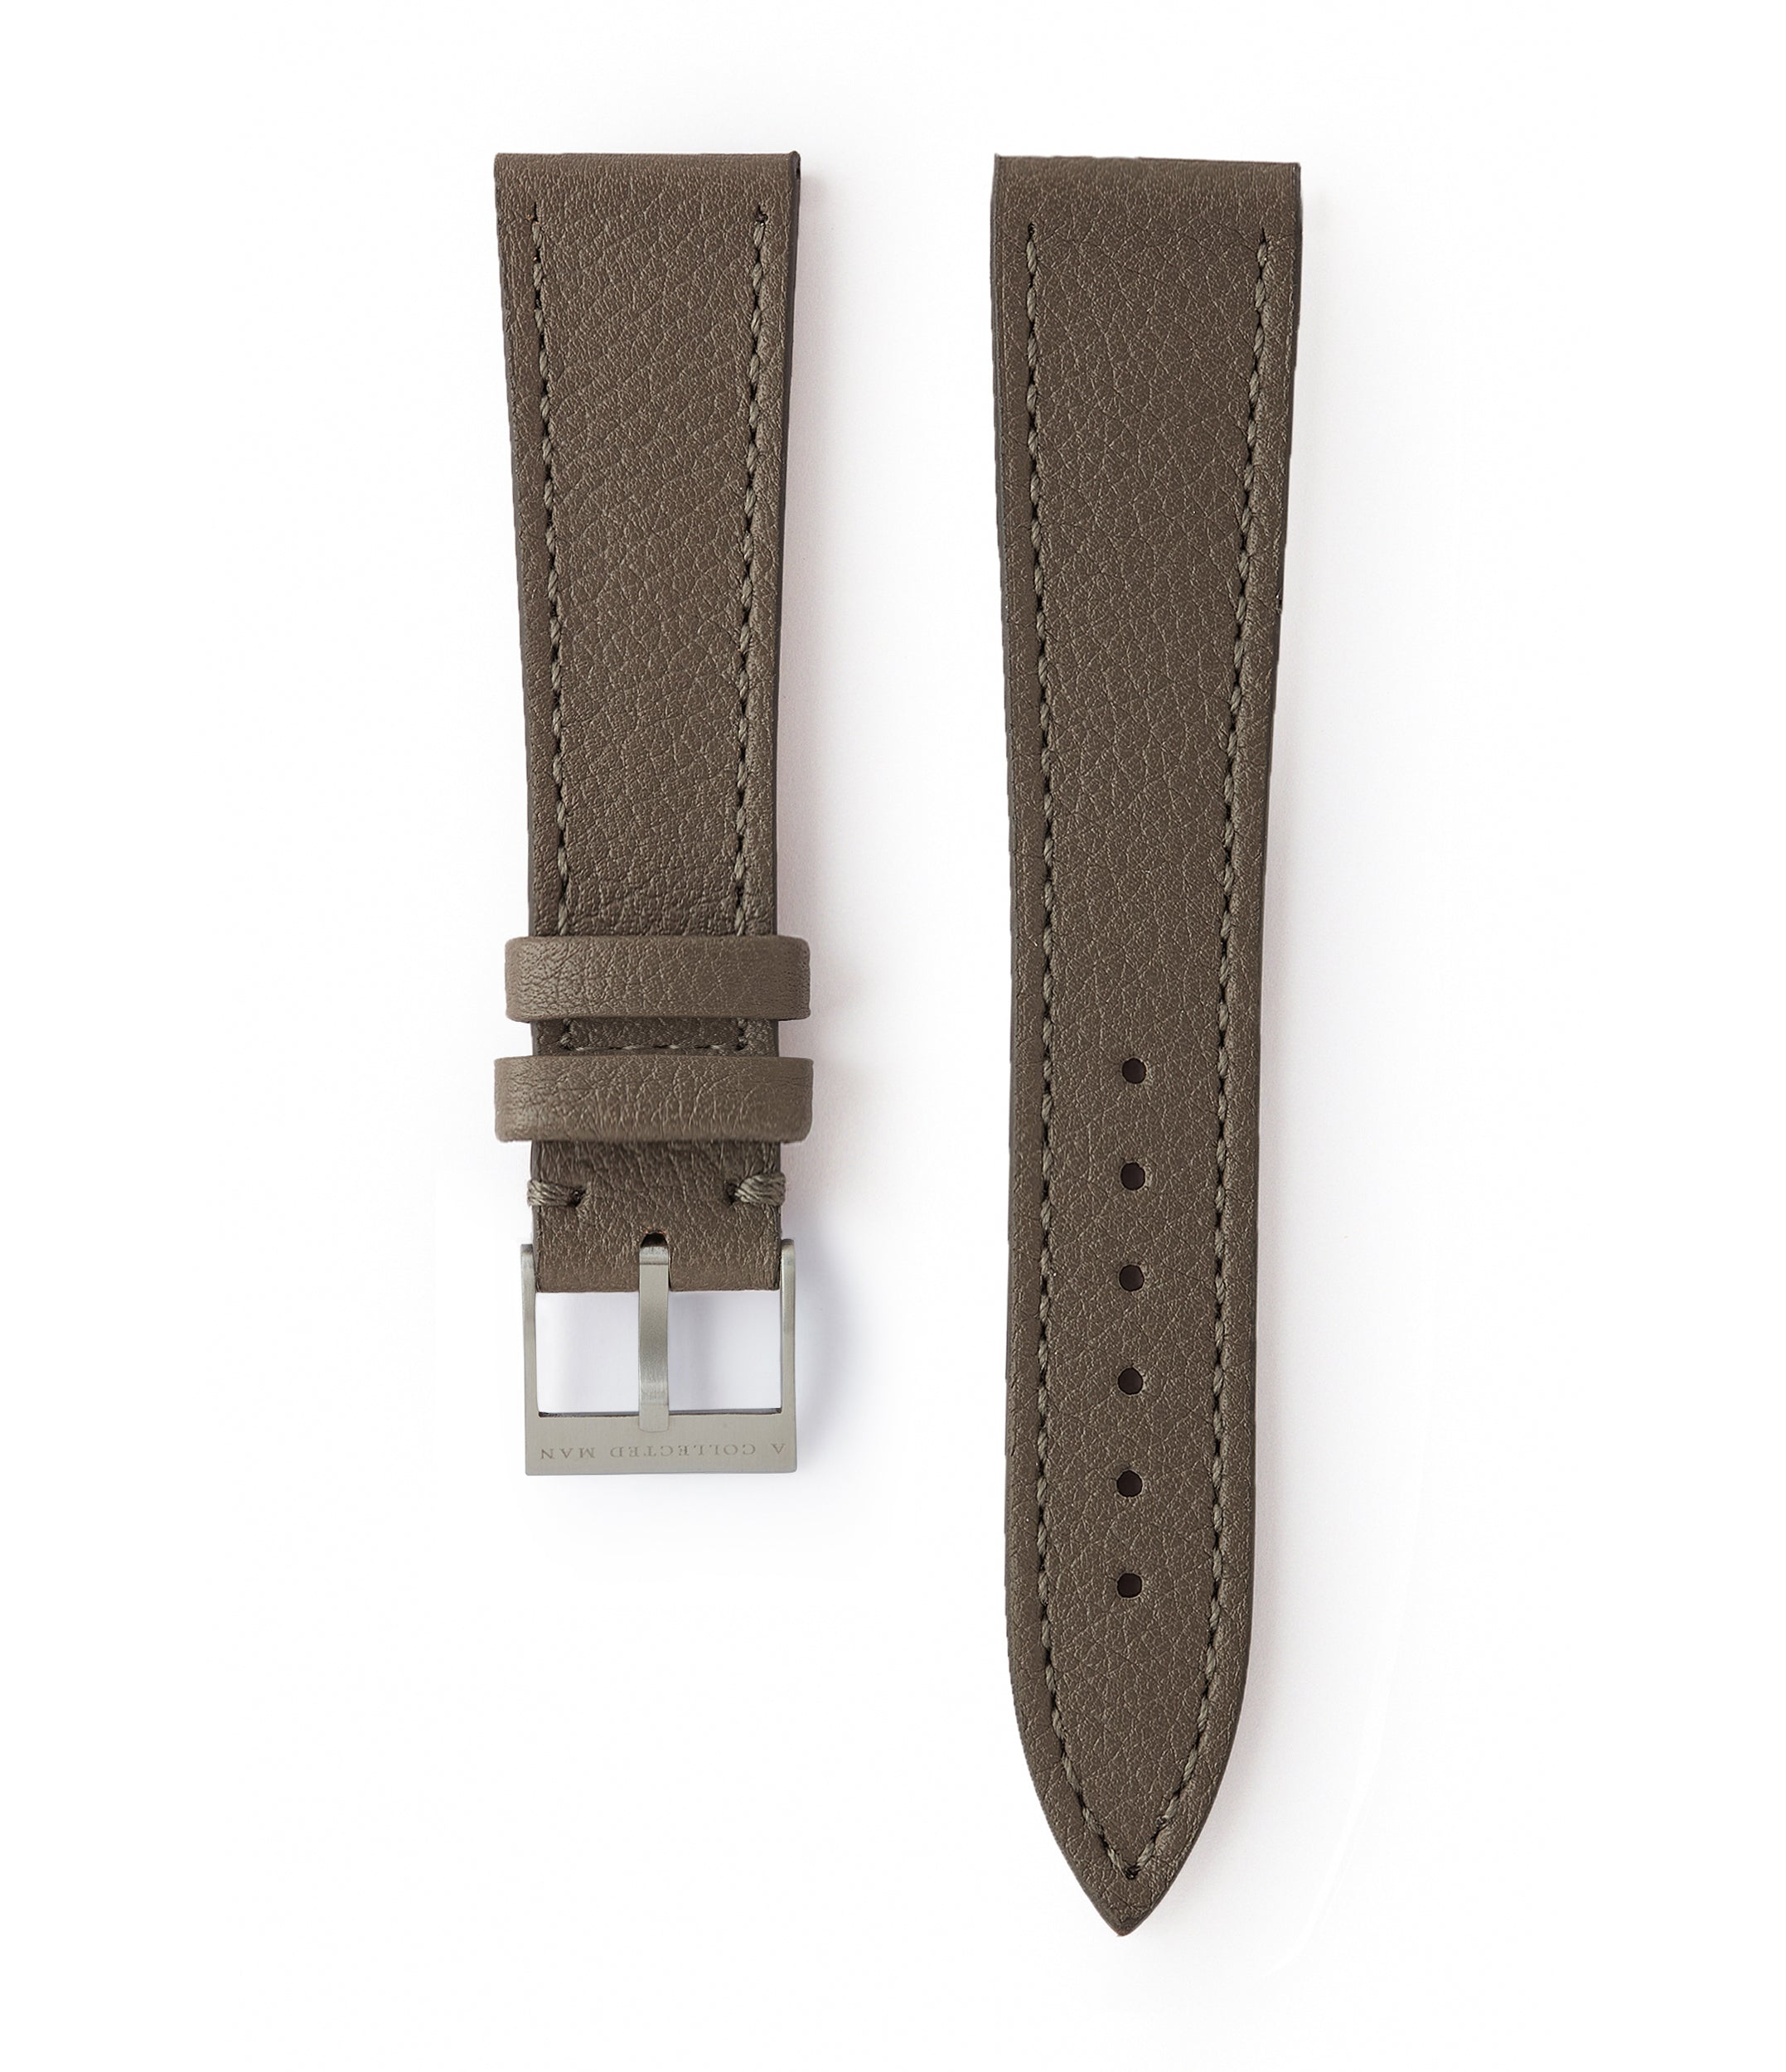 buy grey grained leather watch strap Antwerp Molequin for sale order online at A Collected Man London